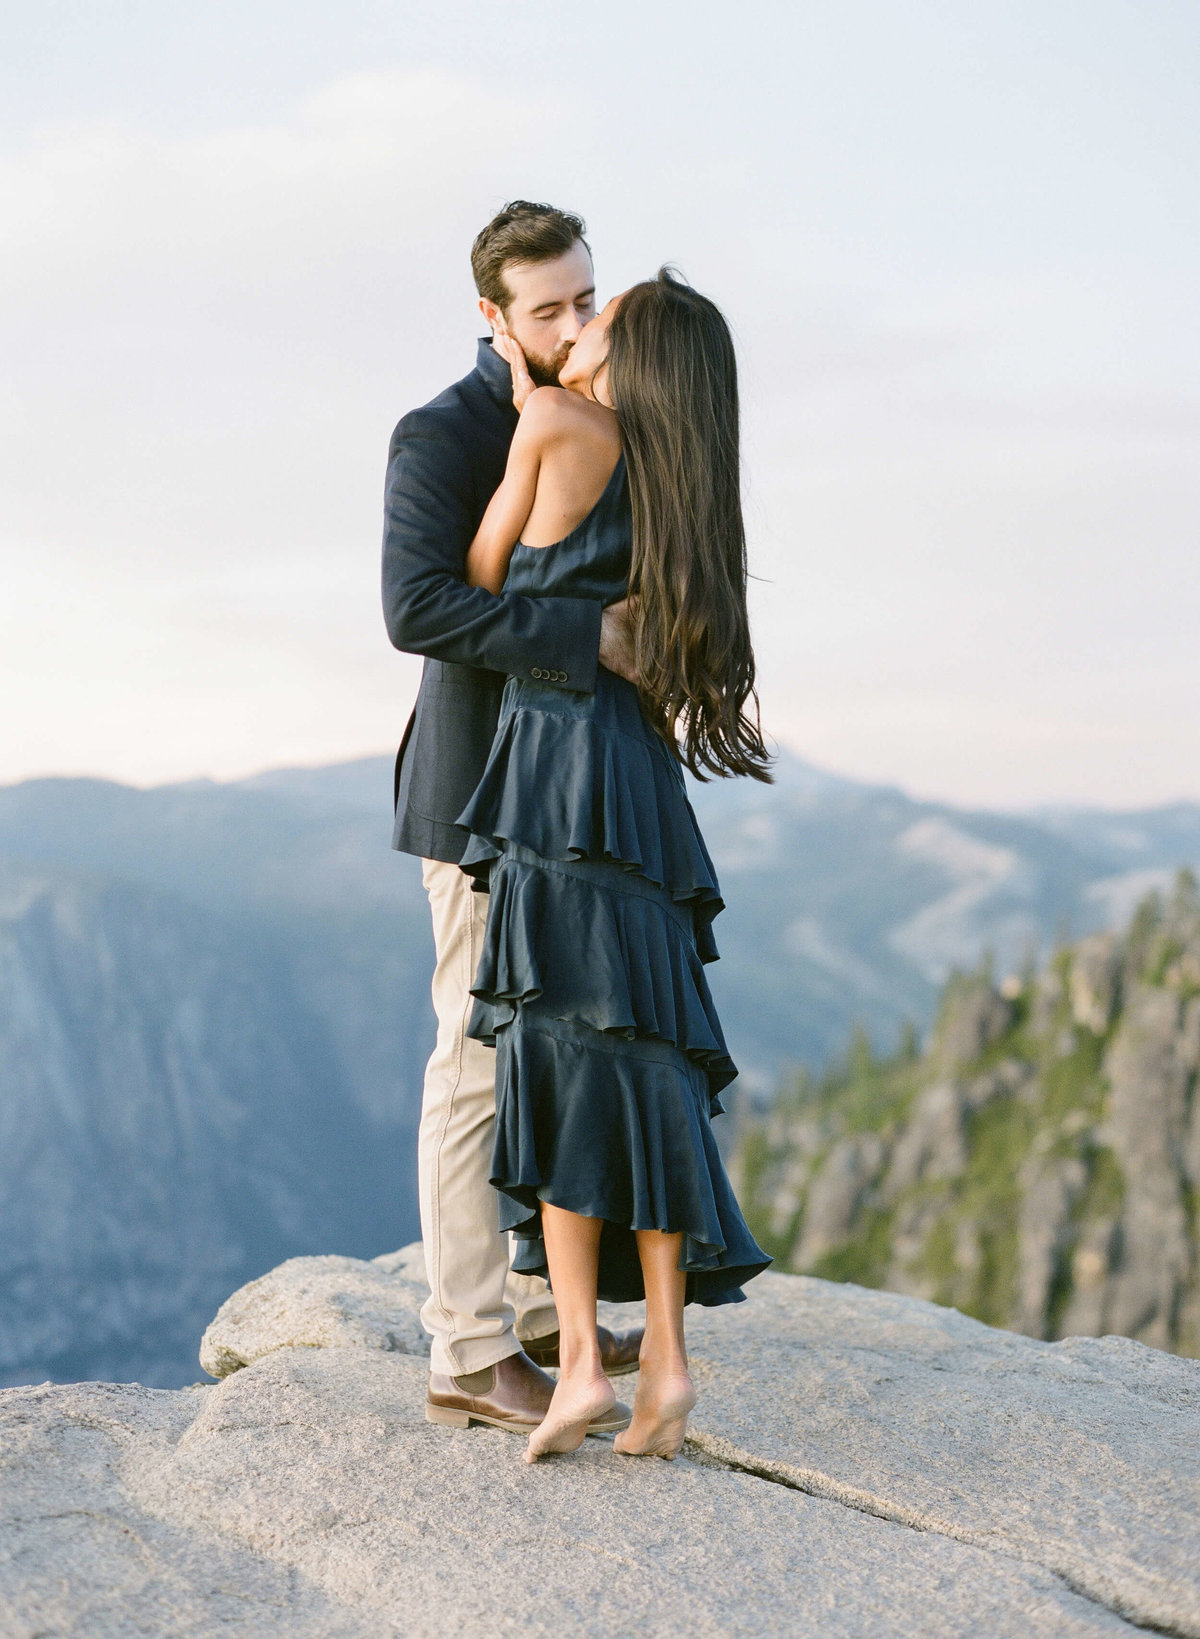 81-KTMerry-destination-engagement-Yosemite-mountain-kiss